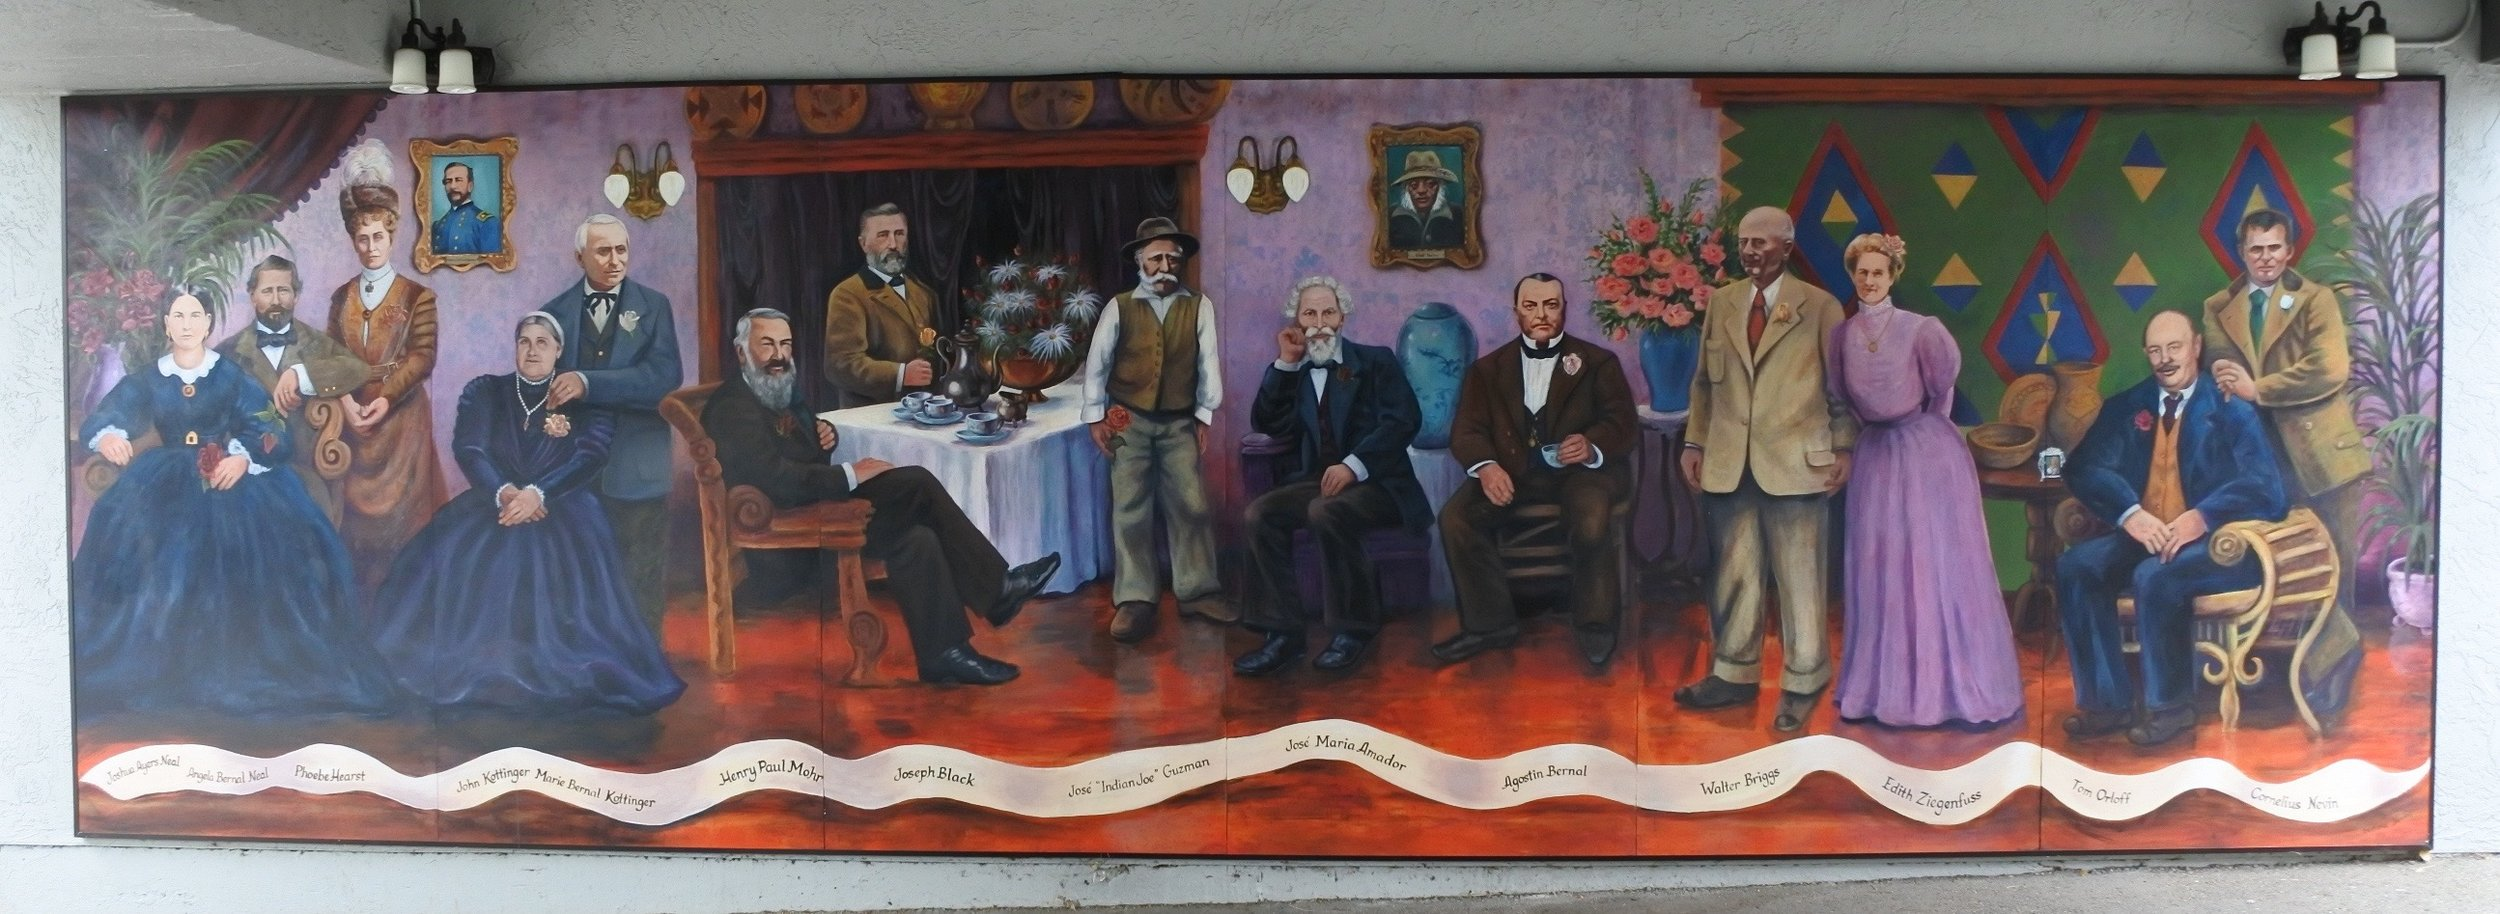 Pleasanton Founders Mural - Maintained by Preservation Arts